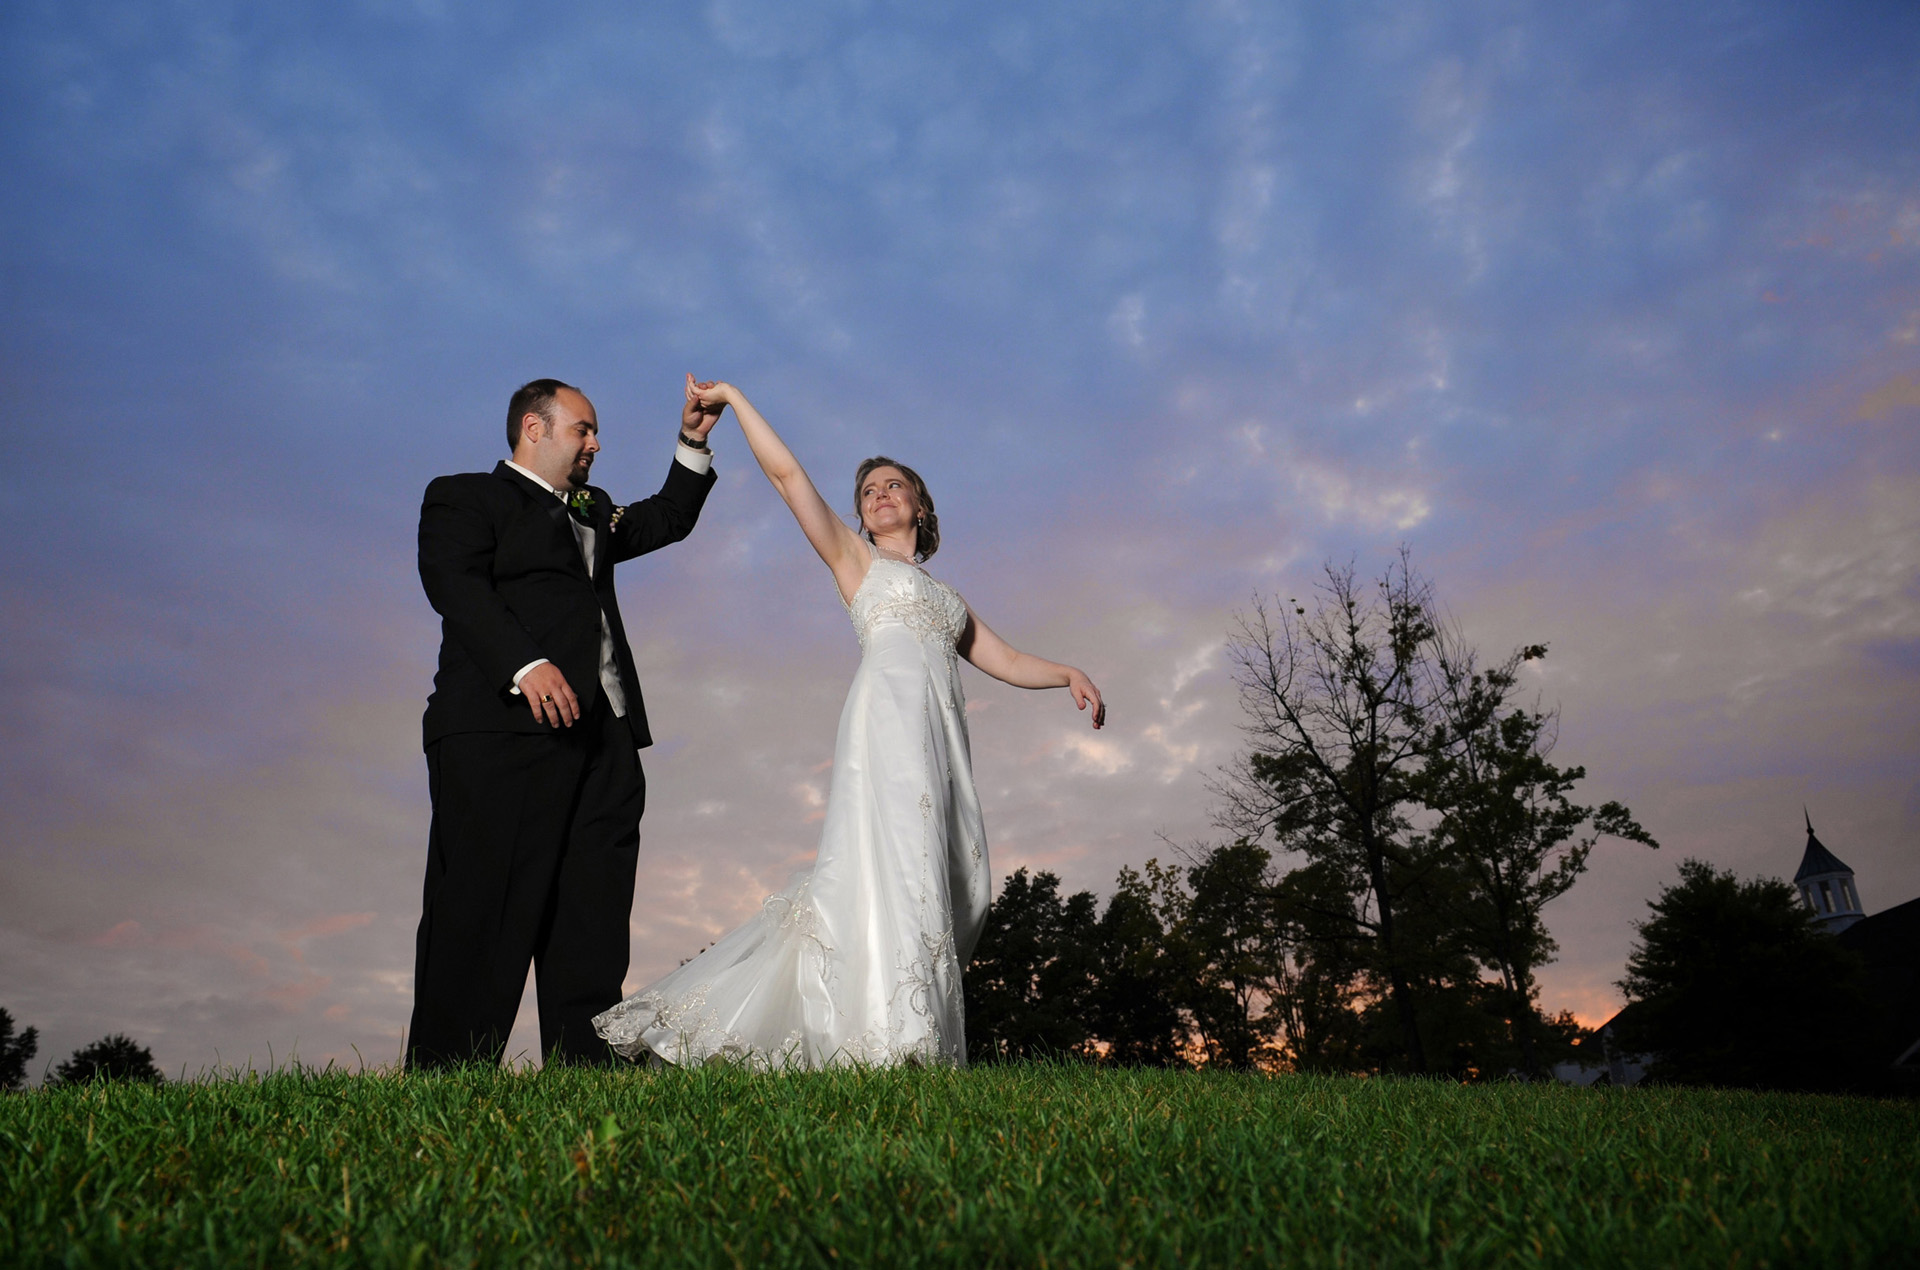 michigan wedding photographer shoots a couples portrait at Cherry Creek during their wedding reception